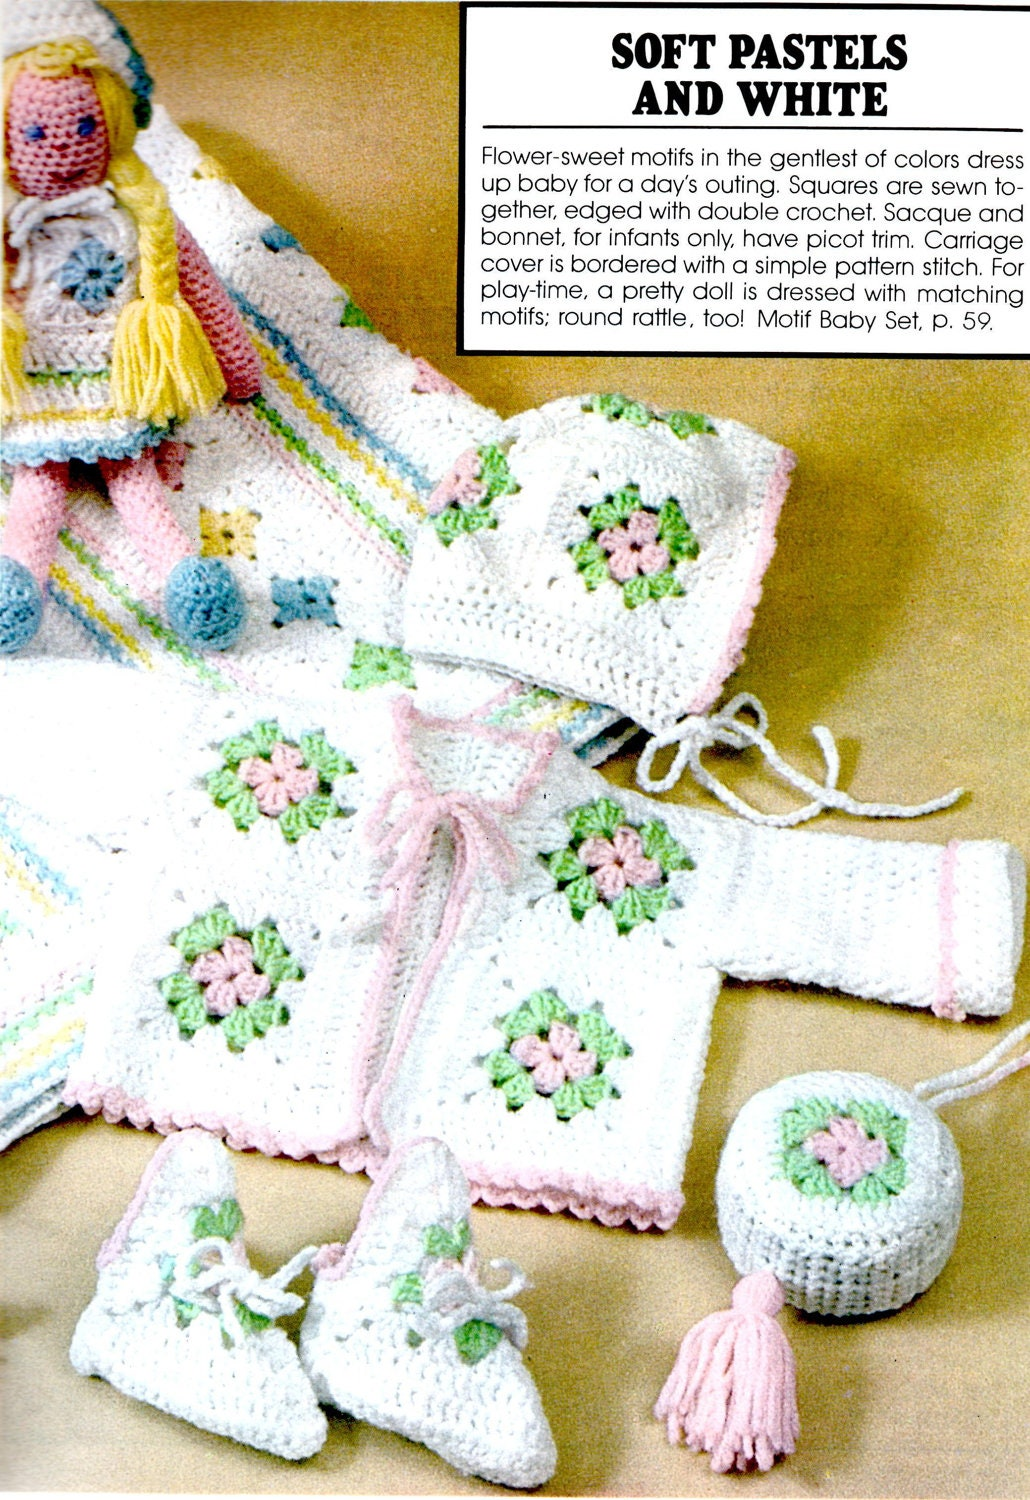 7c39105eb Crochet Pattern Granny Square Baby Blanket, Sweater, Hat, Booties, Rattle  and Doll Instant Download